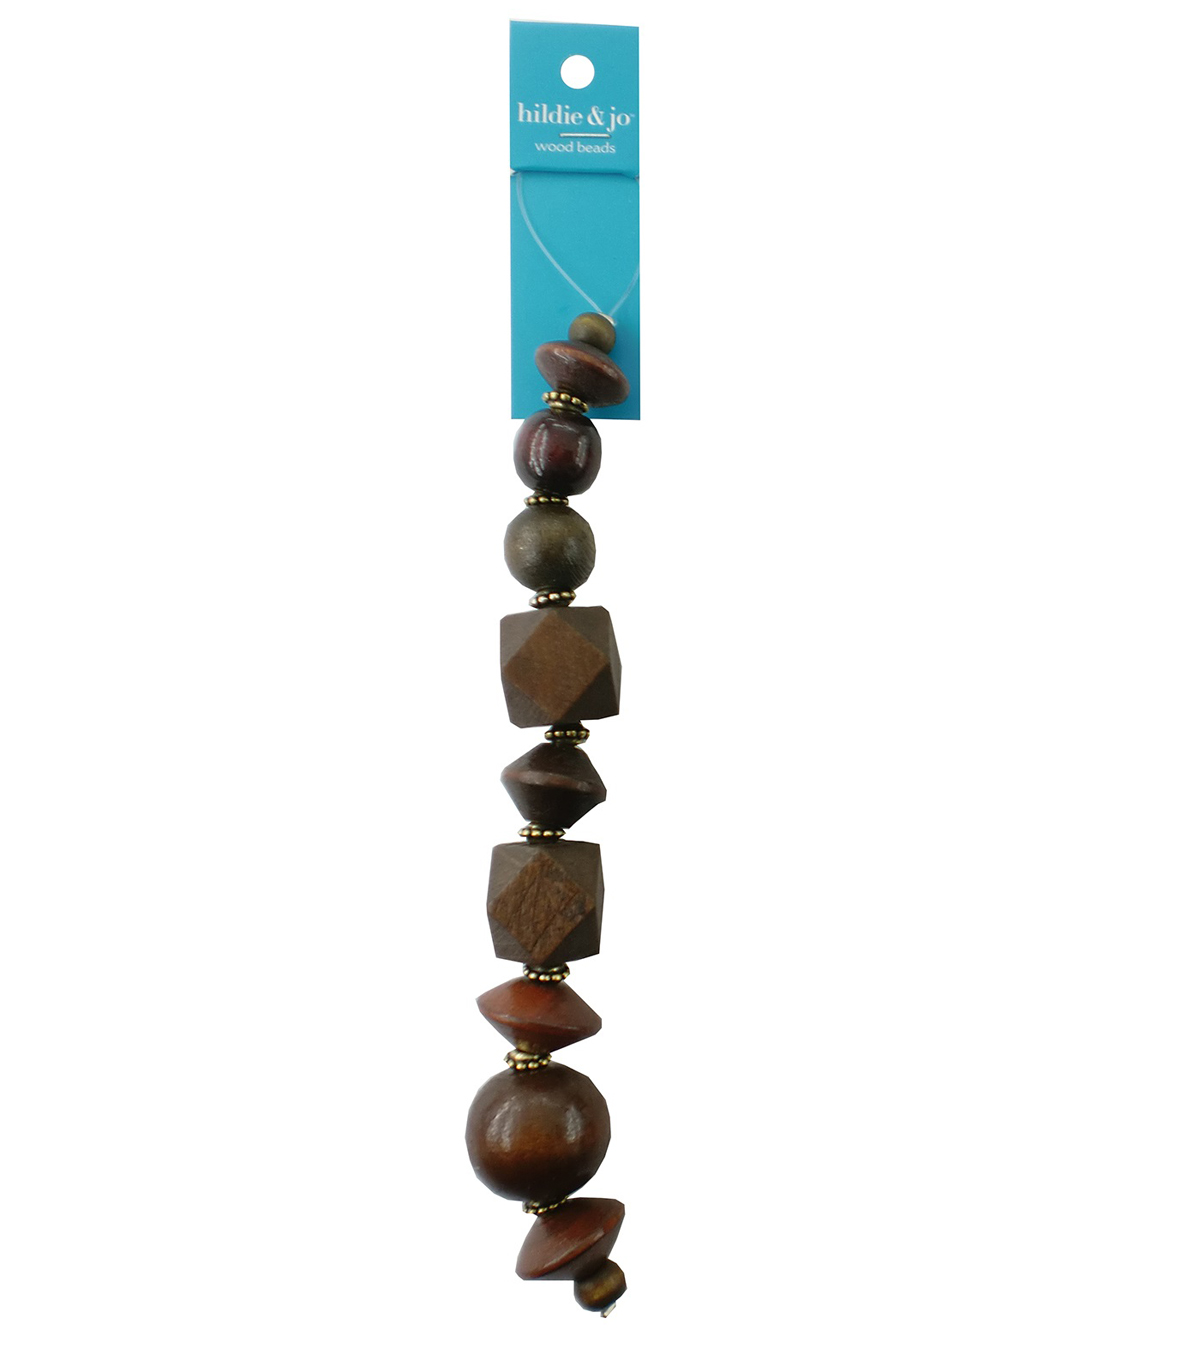 hildie & jo™ 7\u0027\u0027 Wood Beads Strand-Brown